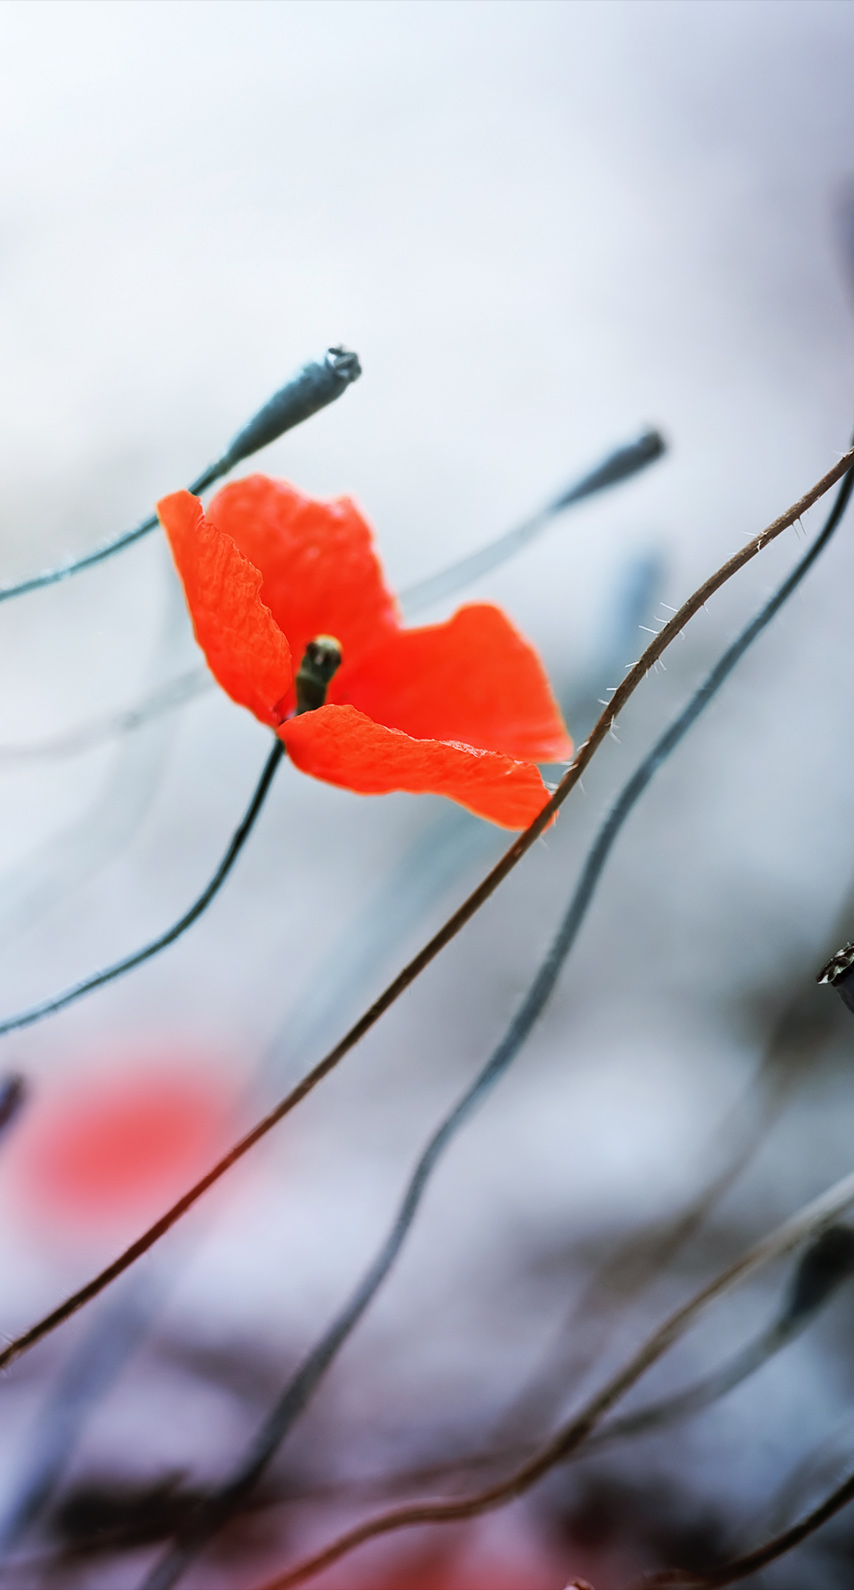 fall, tree, branch, bright, poppy, blur, no person, color, outdoors, flora, garden